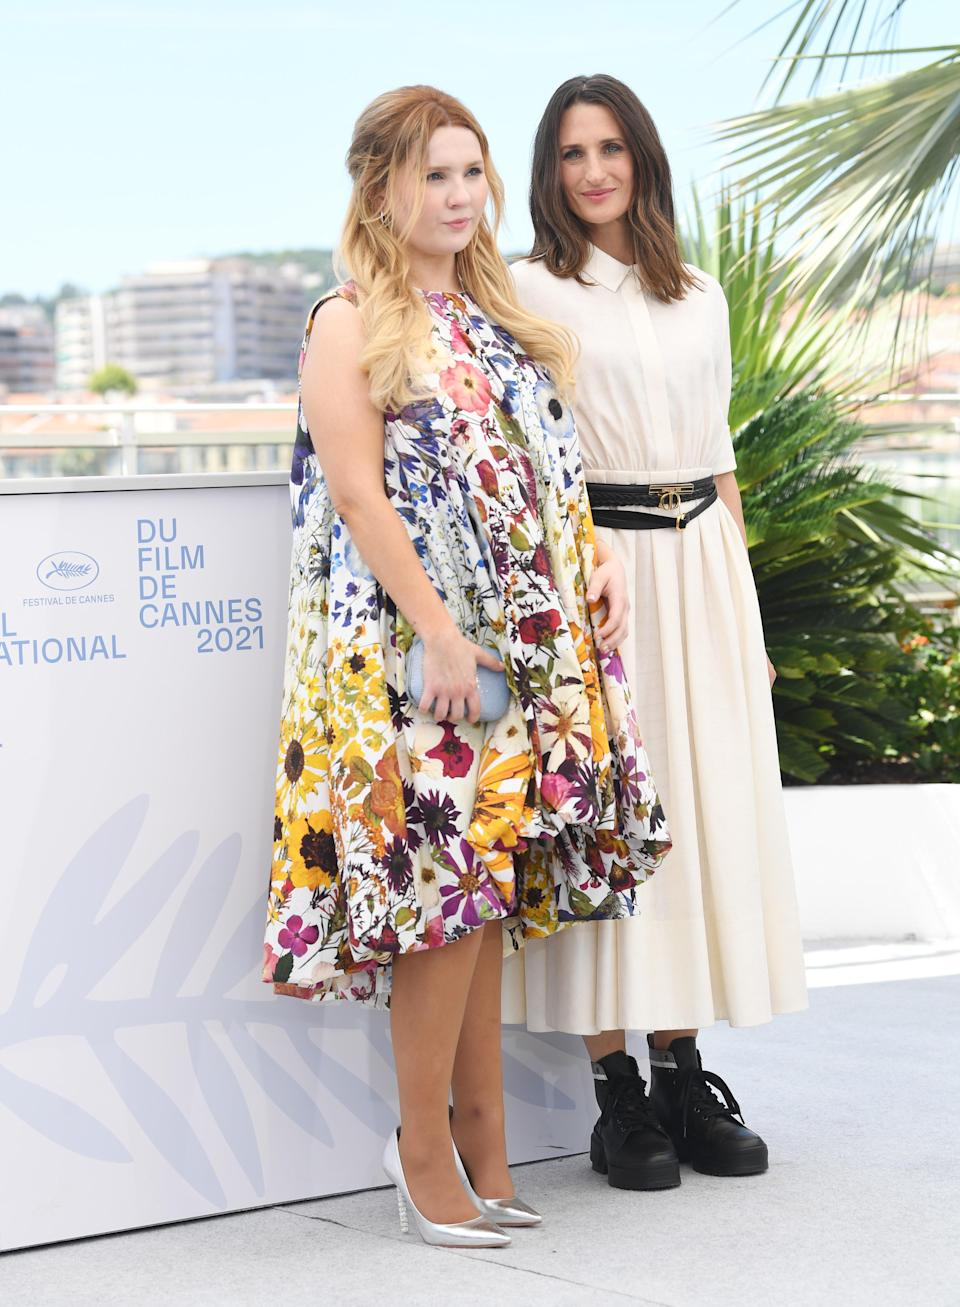 """Abigail Breslin and Camille Cottin at the """"Stillwater"""" photocall at the 2021 Cannes Film Festival. - Credit: MEGA"""